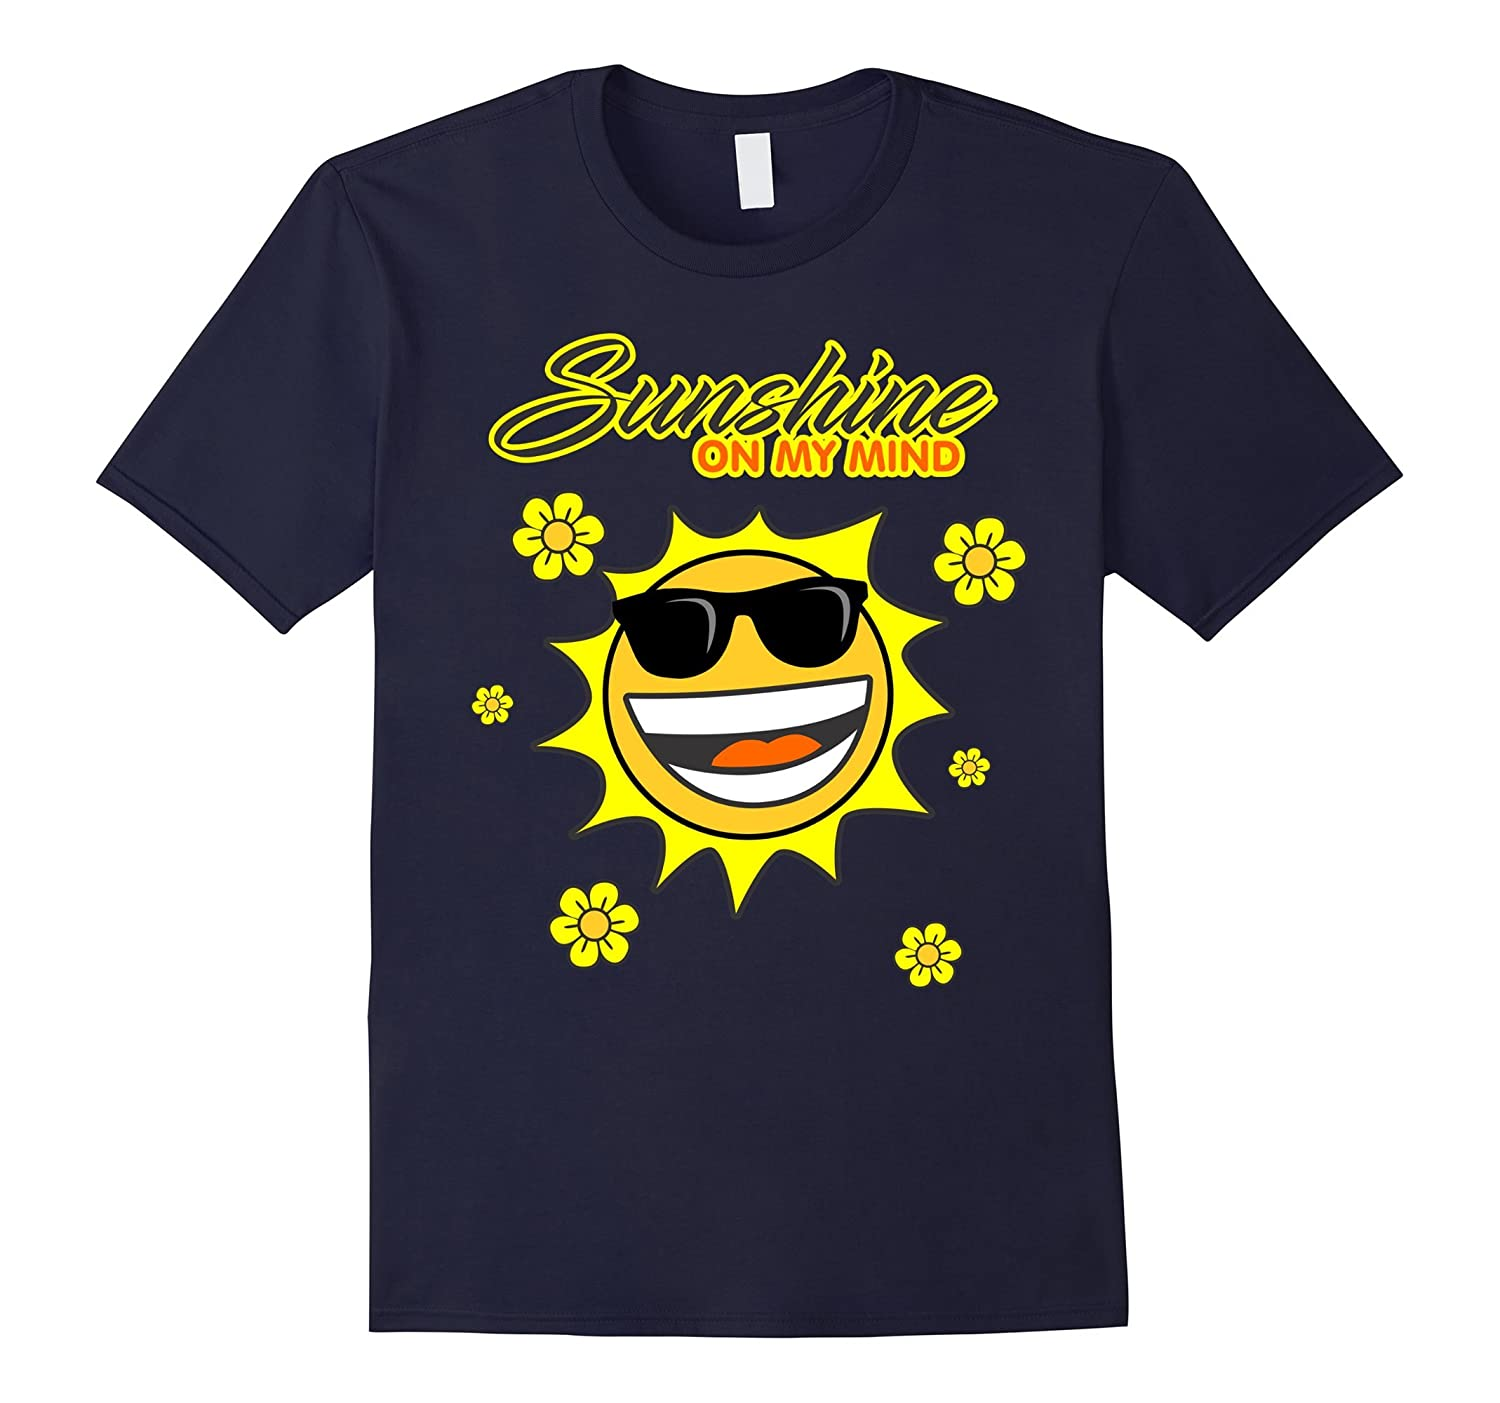 Sunshine On My Mind T-shirt - Fun Summer Beach Sun emoji Tee-Art